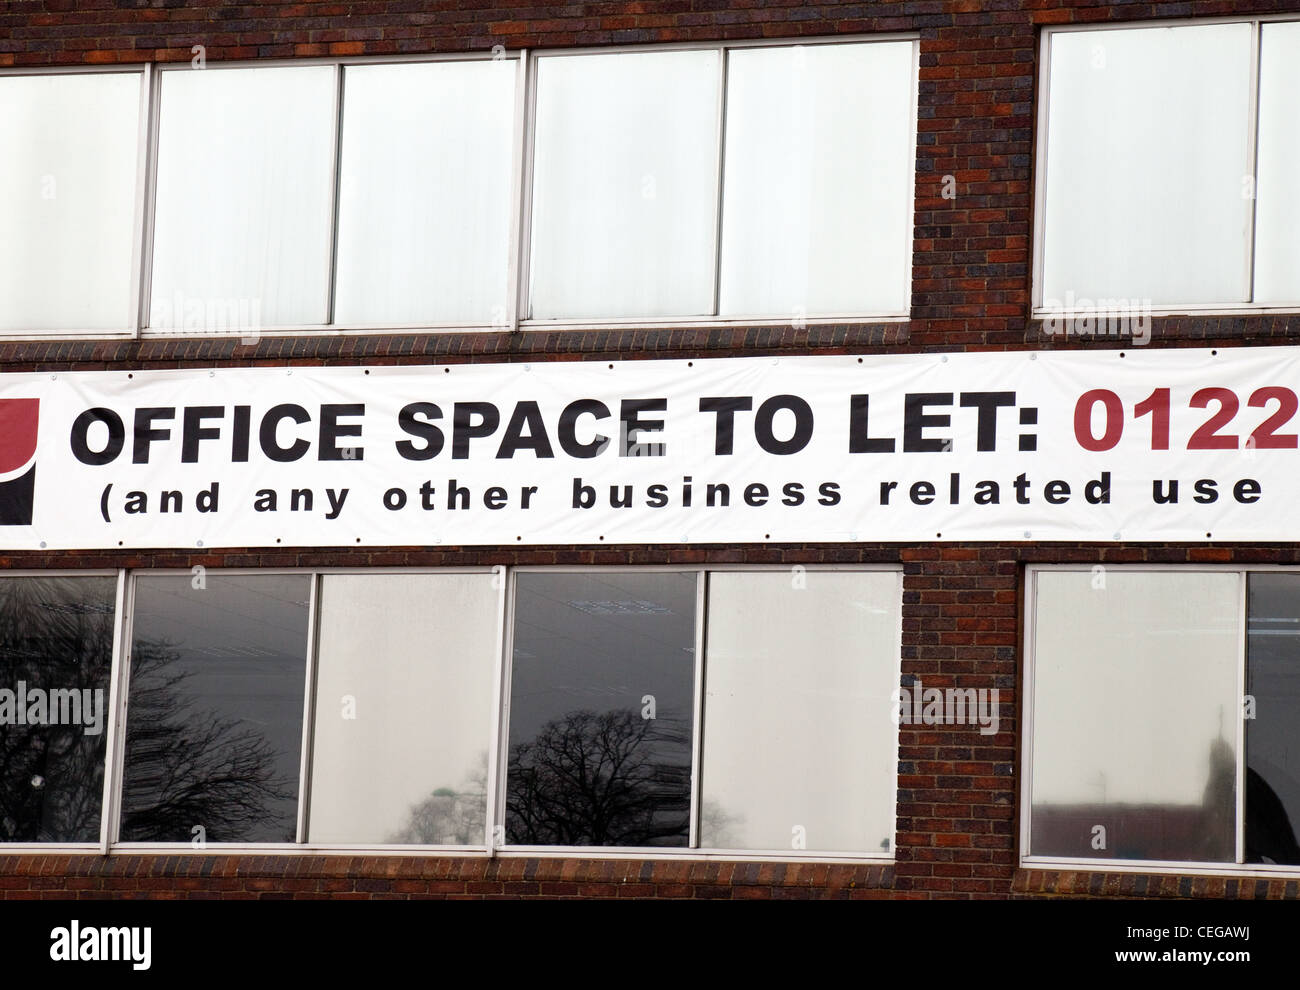 Office space to let sign, UK - Stock Image